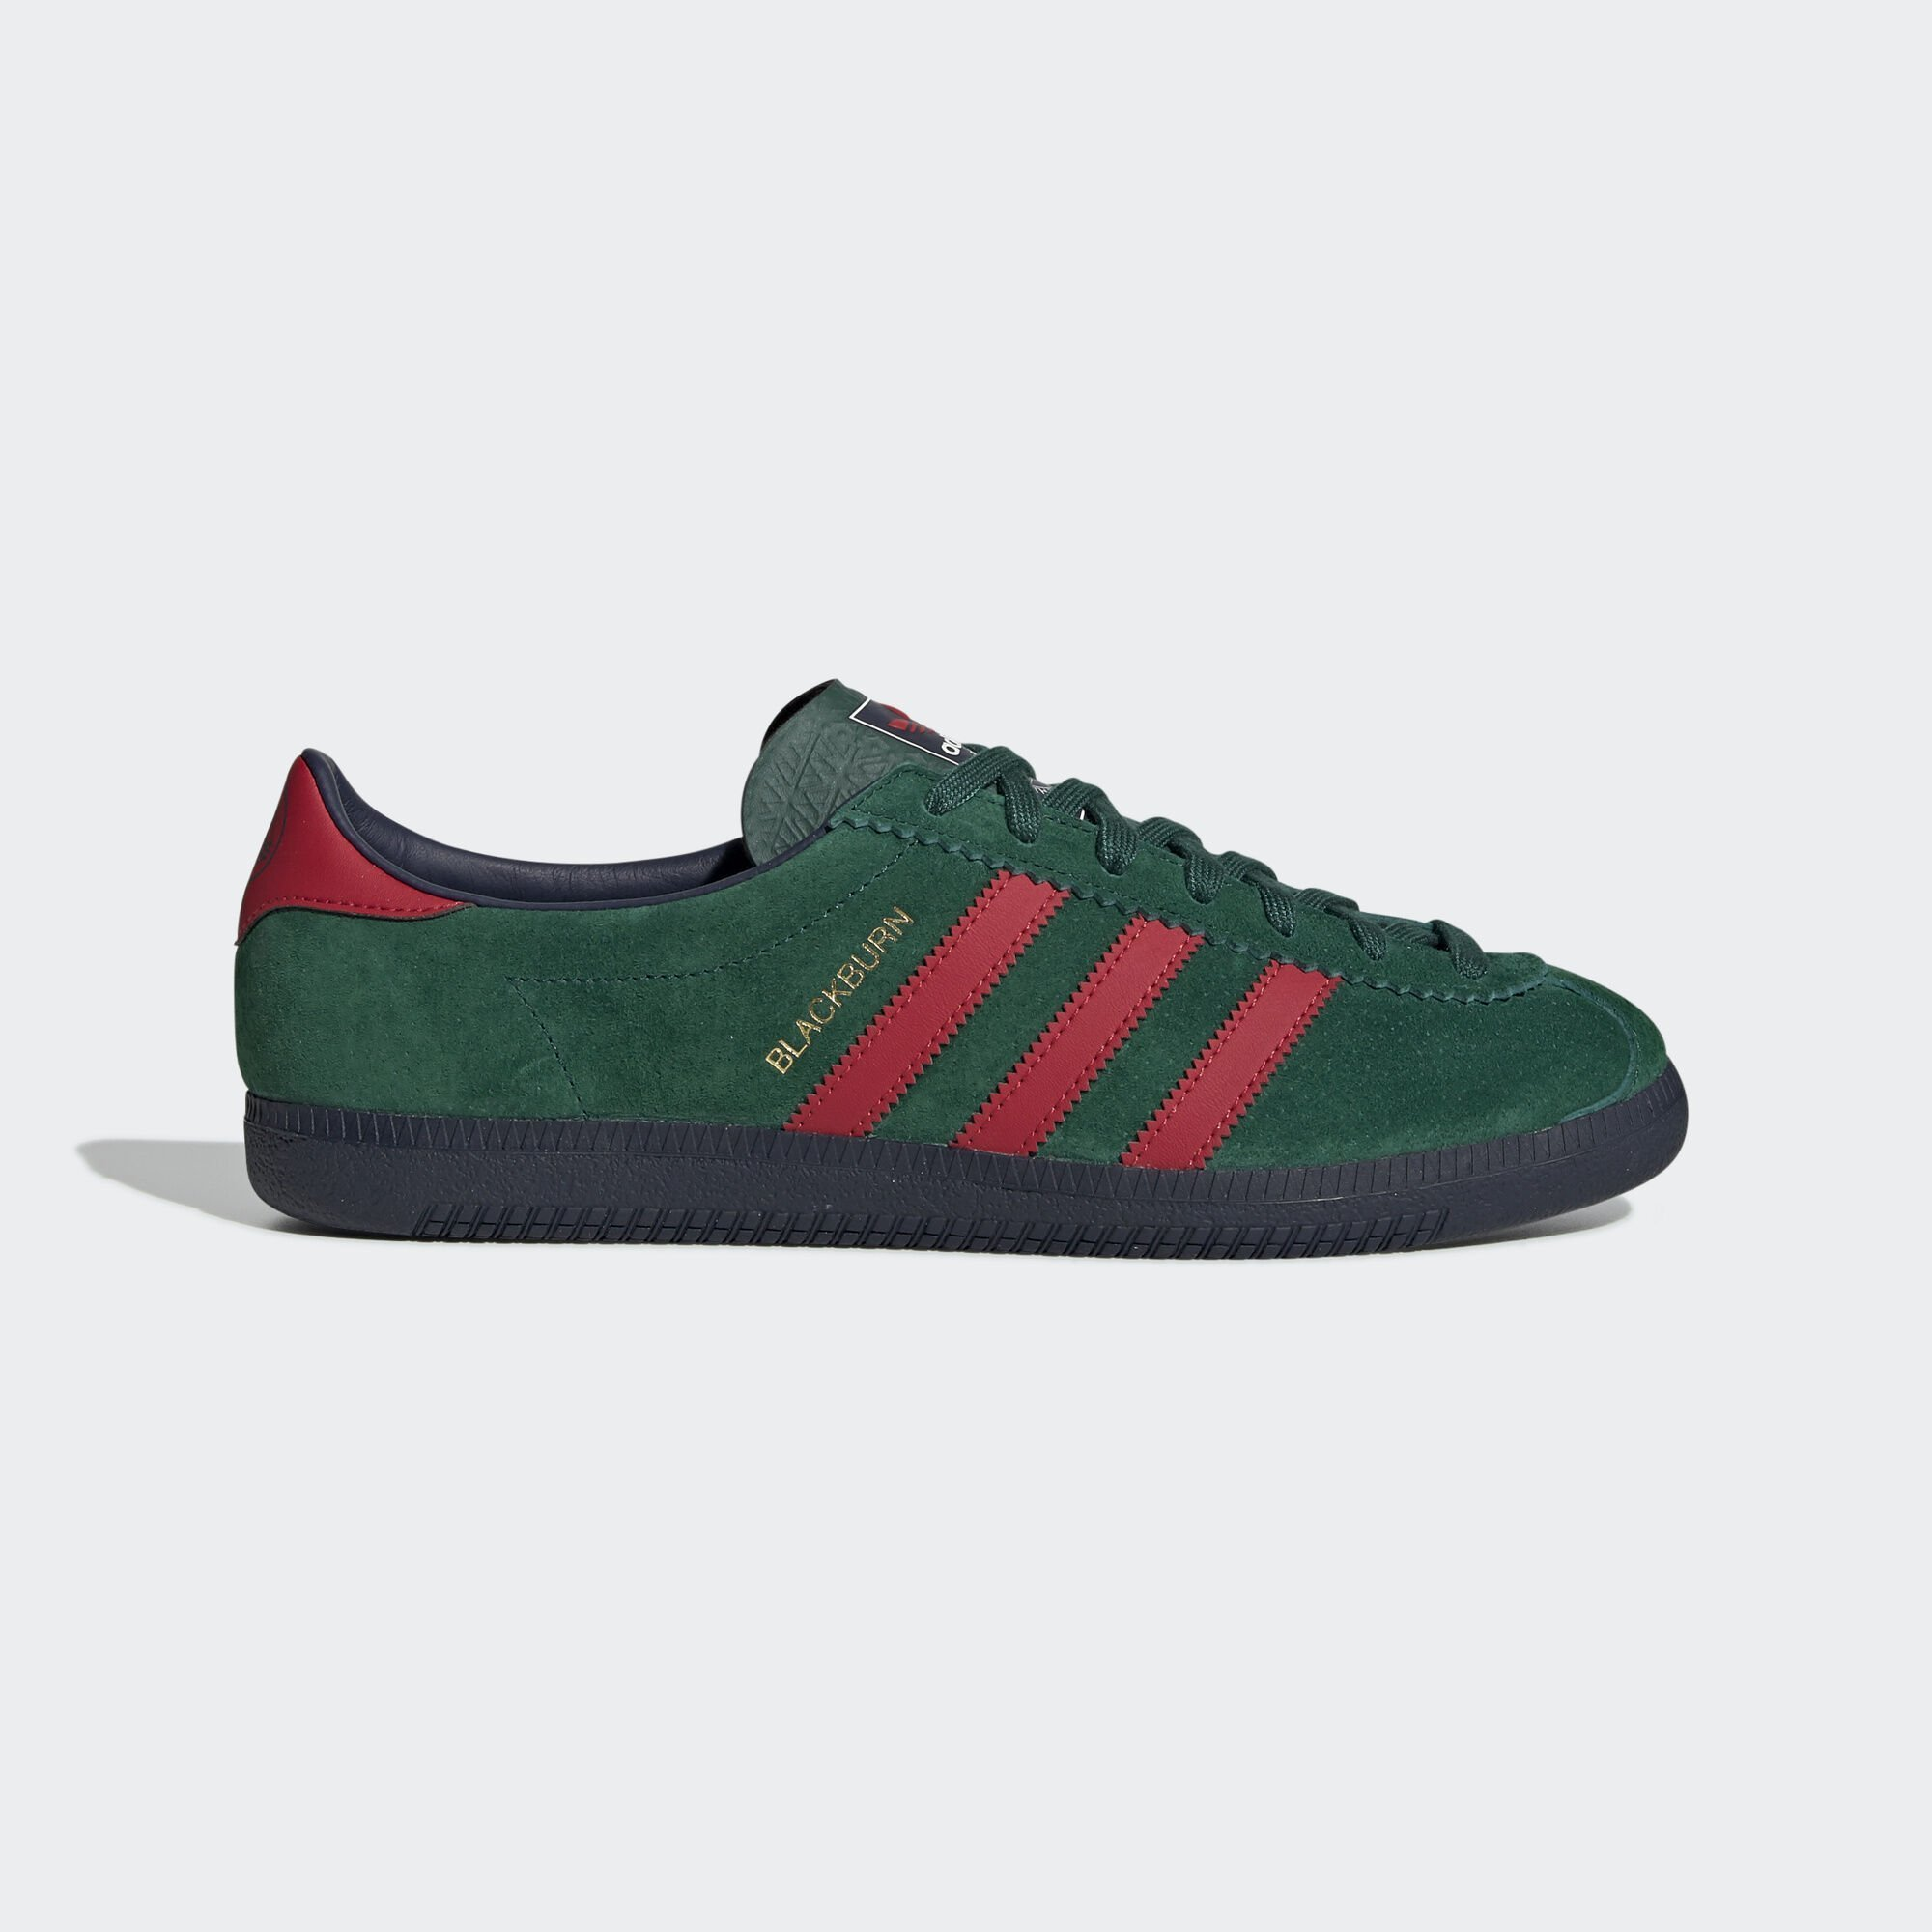 adidas Blackburn Spzl Collegiate Green (EF1158)